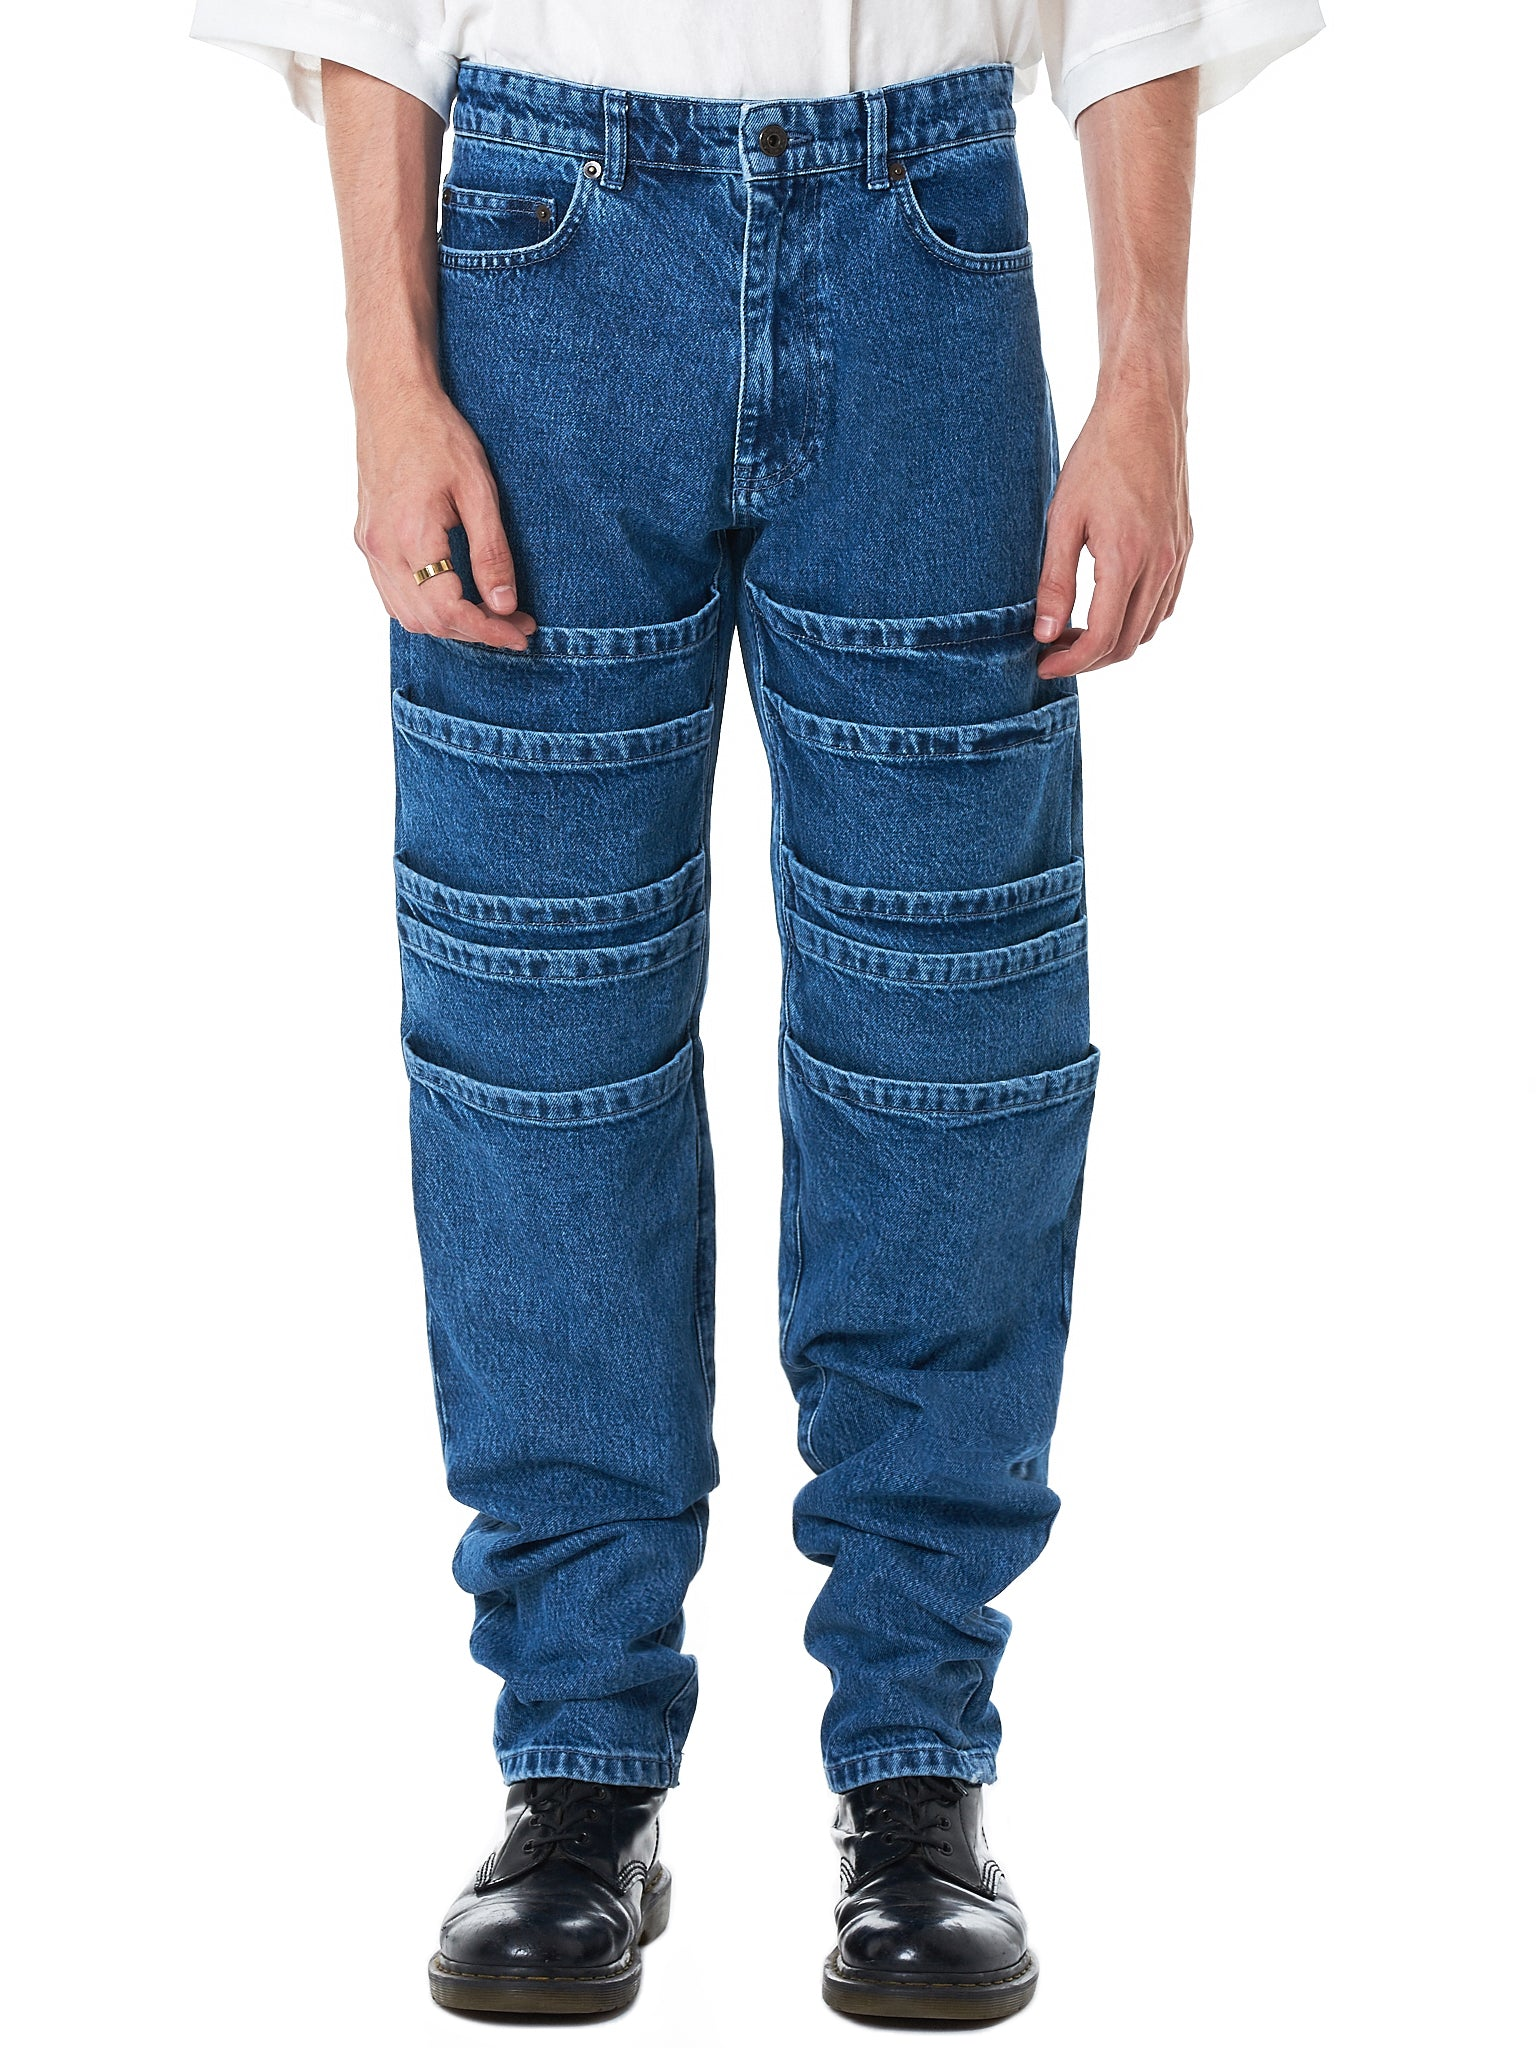 Y/Project Jeans - Hlorenzo Front